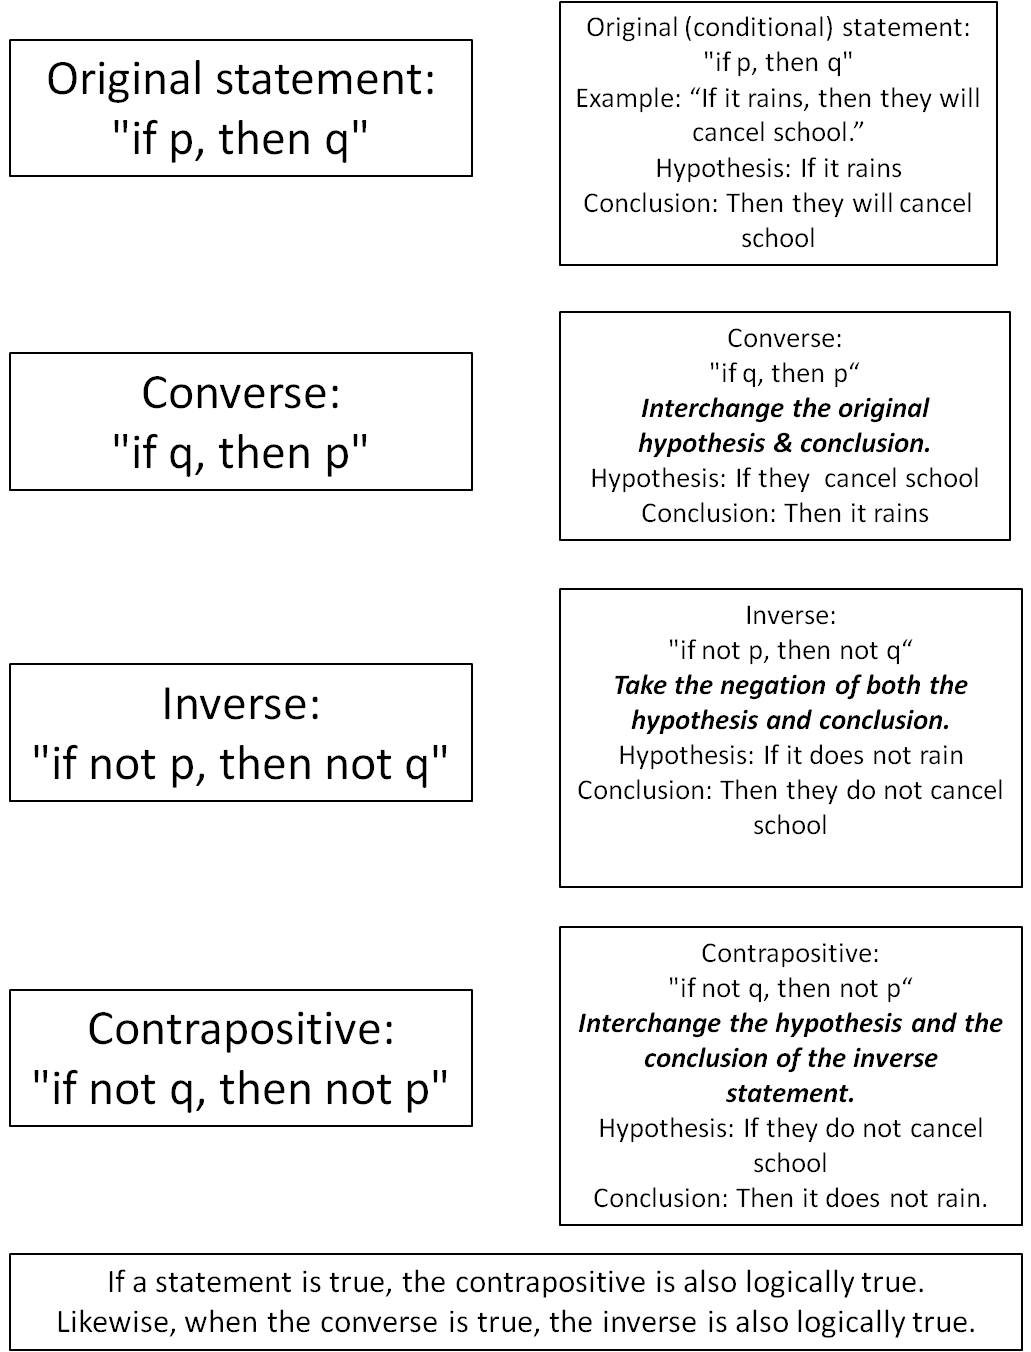 converse inverse contrapositive - Conditional Contrapositive Inverse Converse and Biconditional